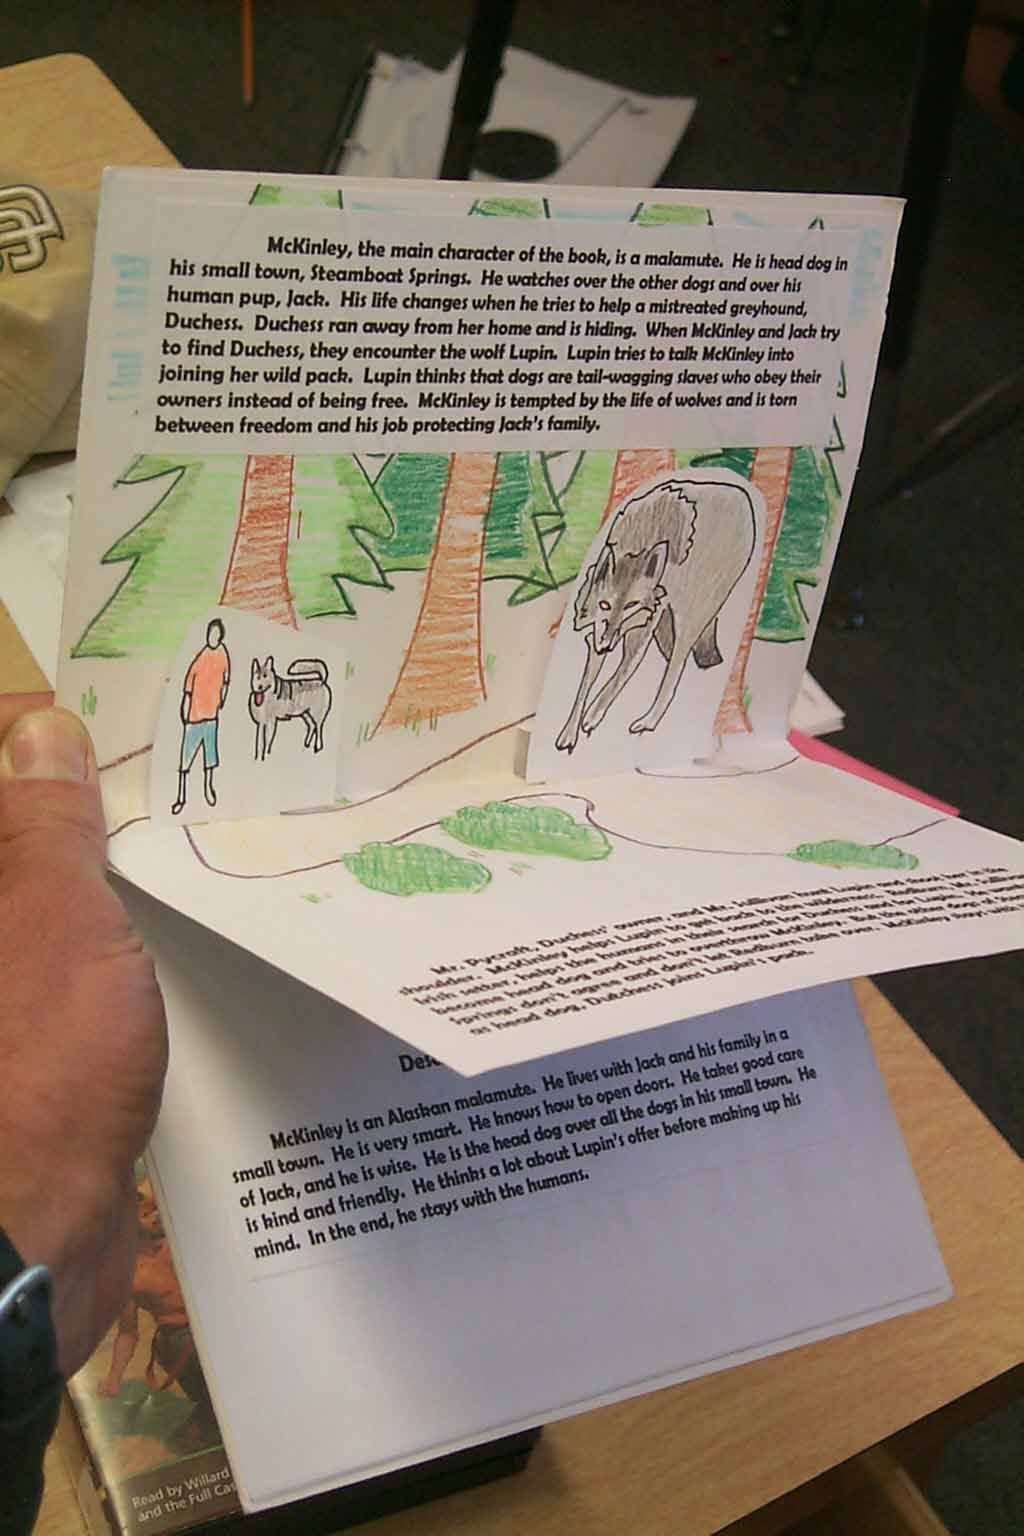 worksheet By The Great Horn Spoon Worksheets by the great horn spoon pop up book report directions teaching directions